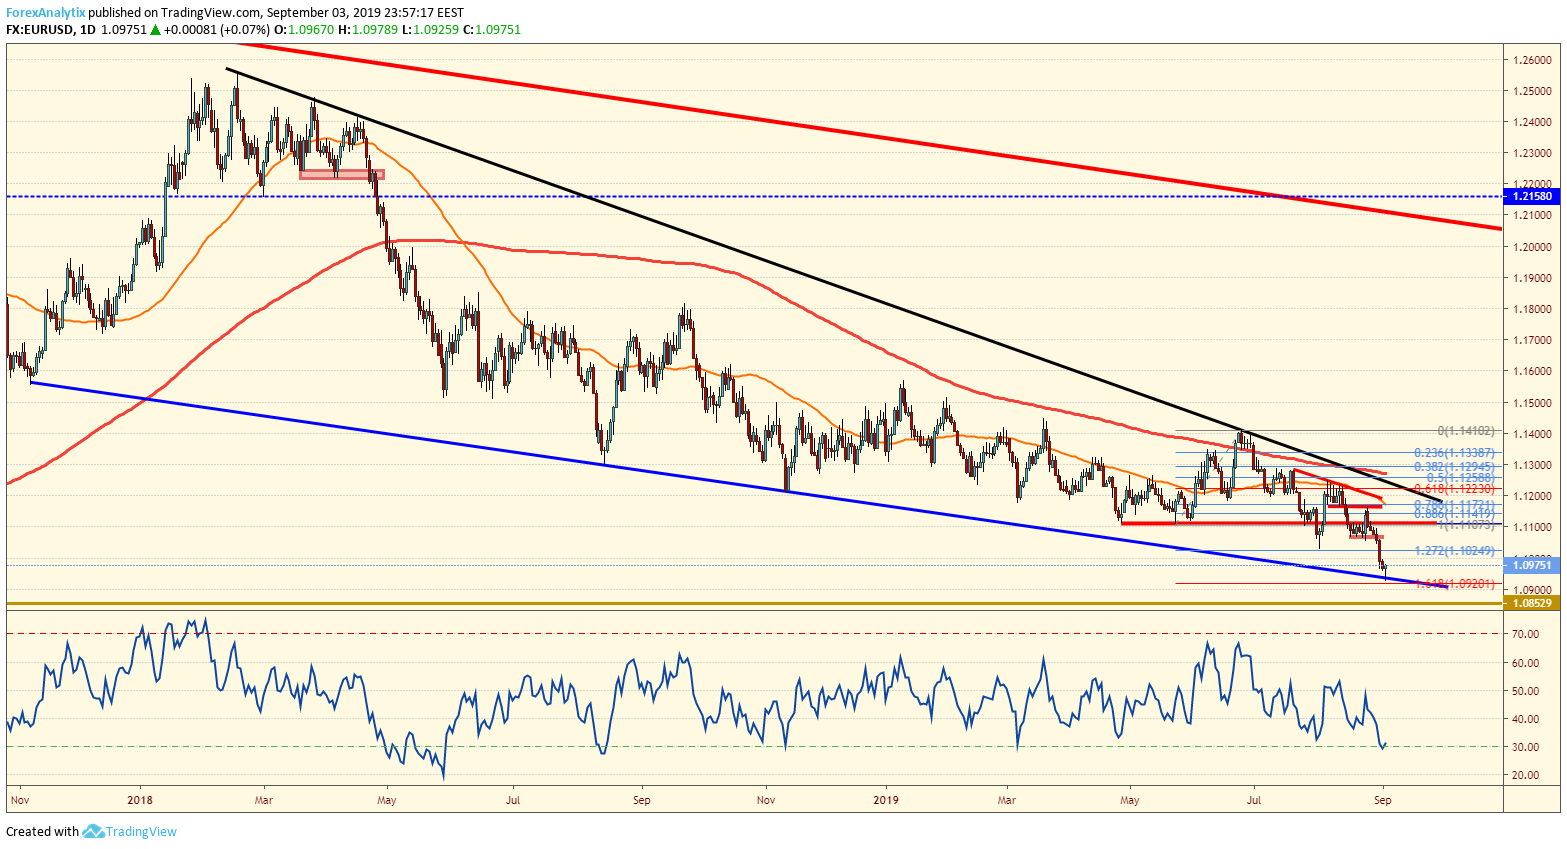 EURUSD Descending Wedge